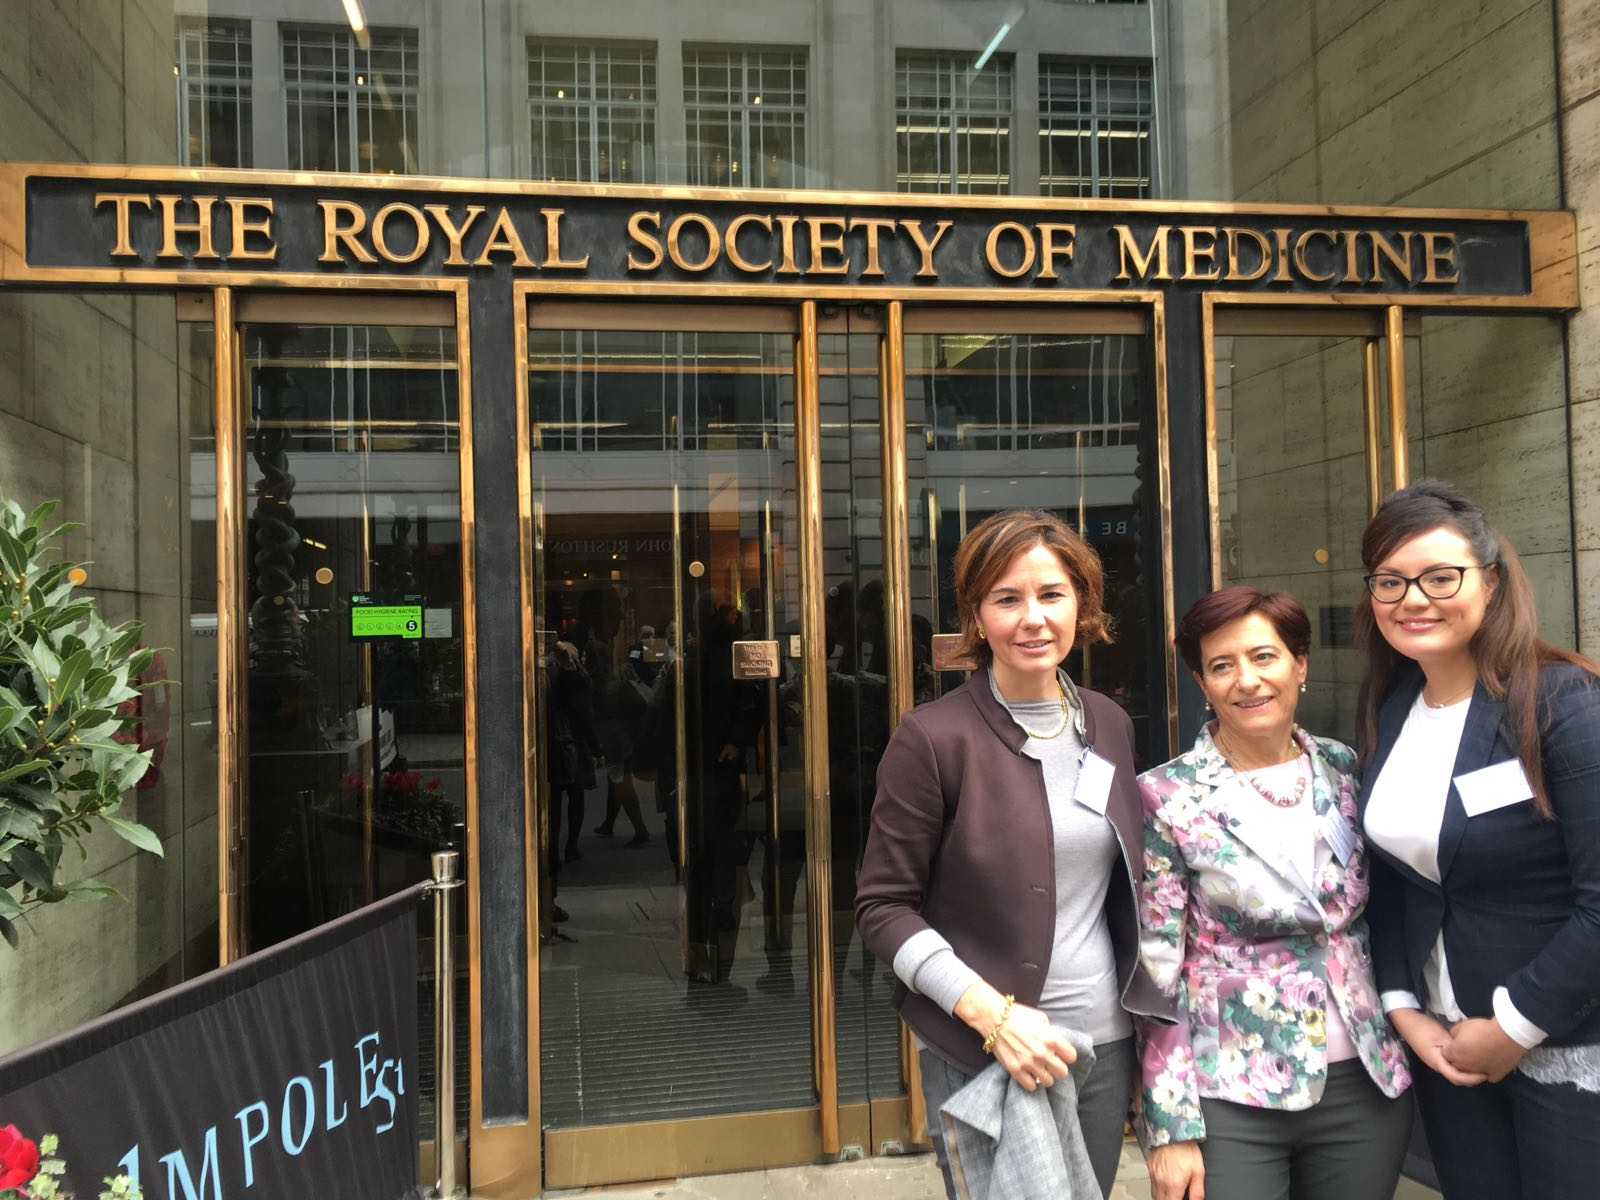 Ricerca infermieristica, UCBM alla Royal Society of Medicine